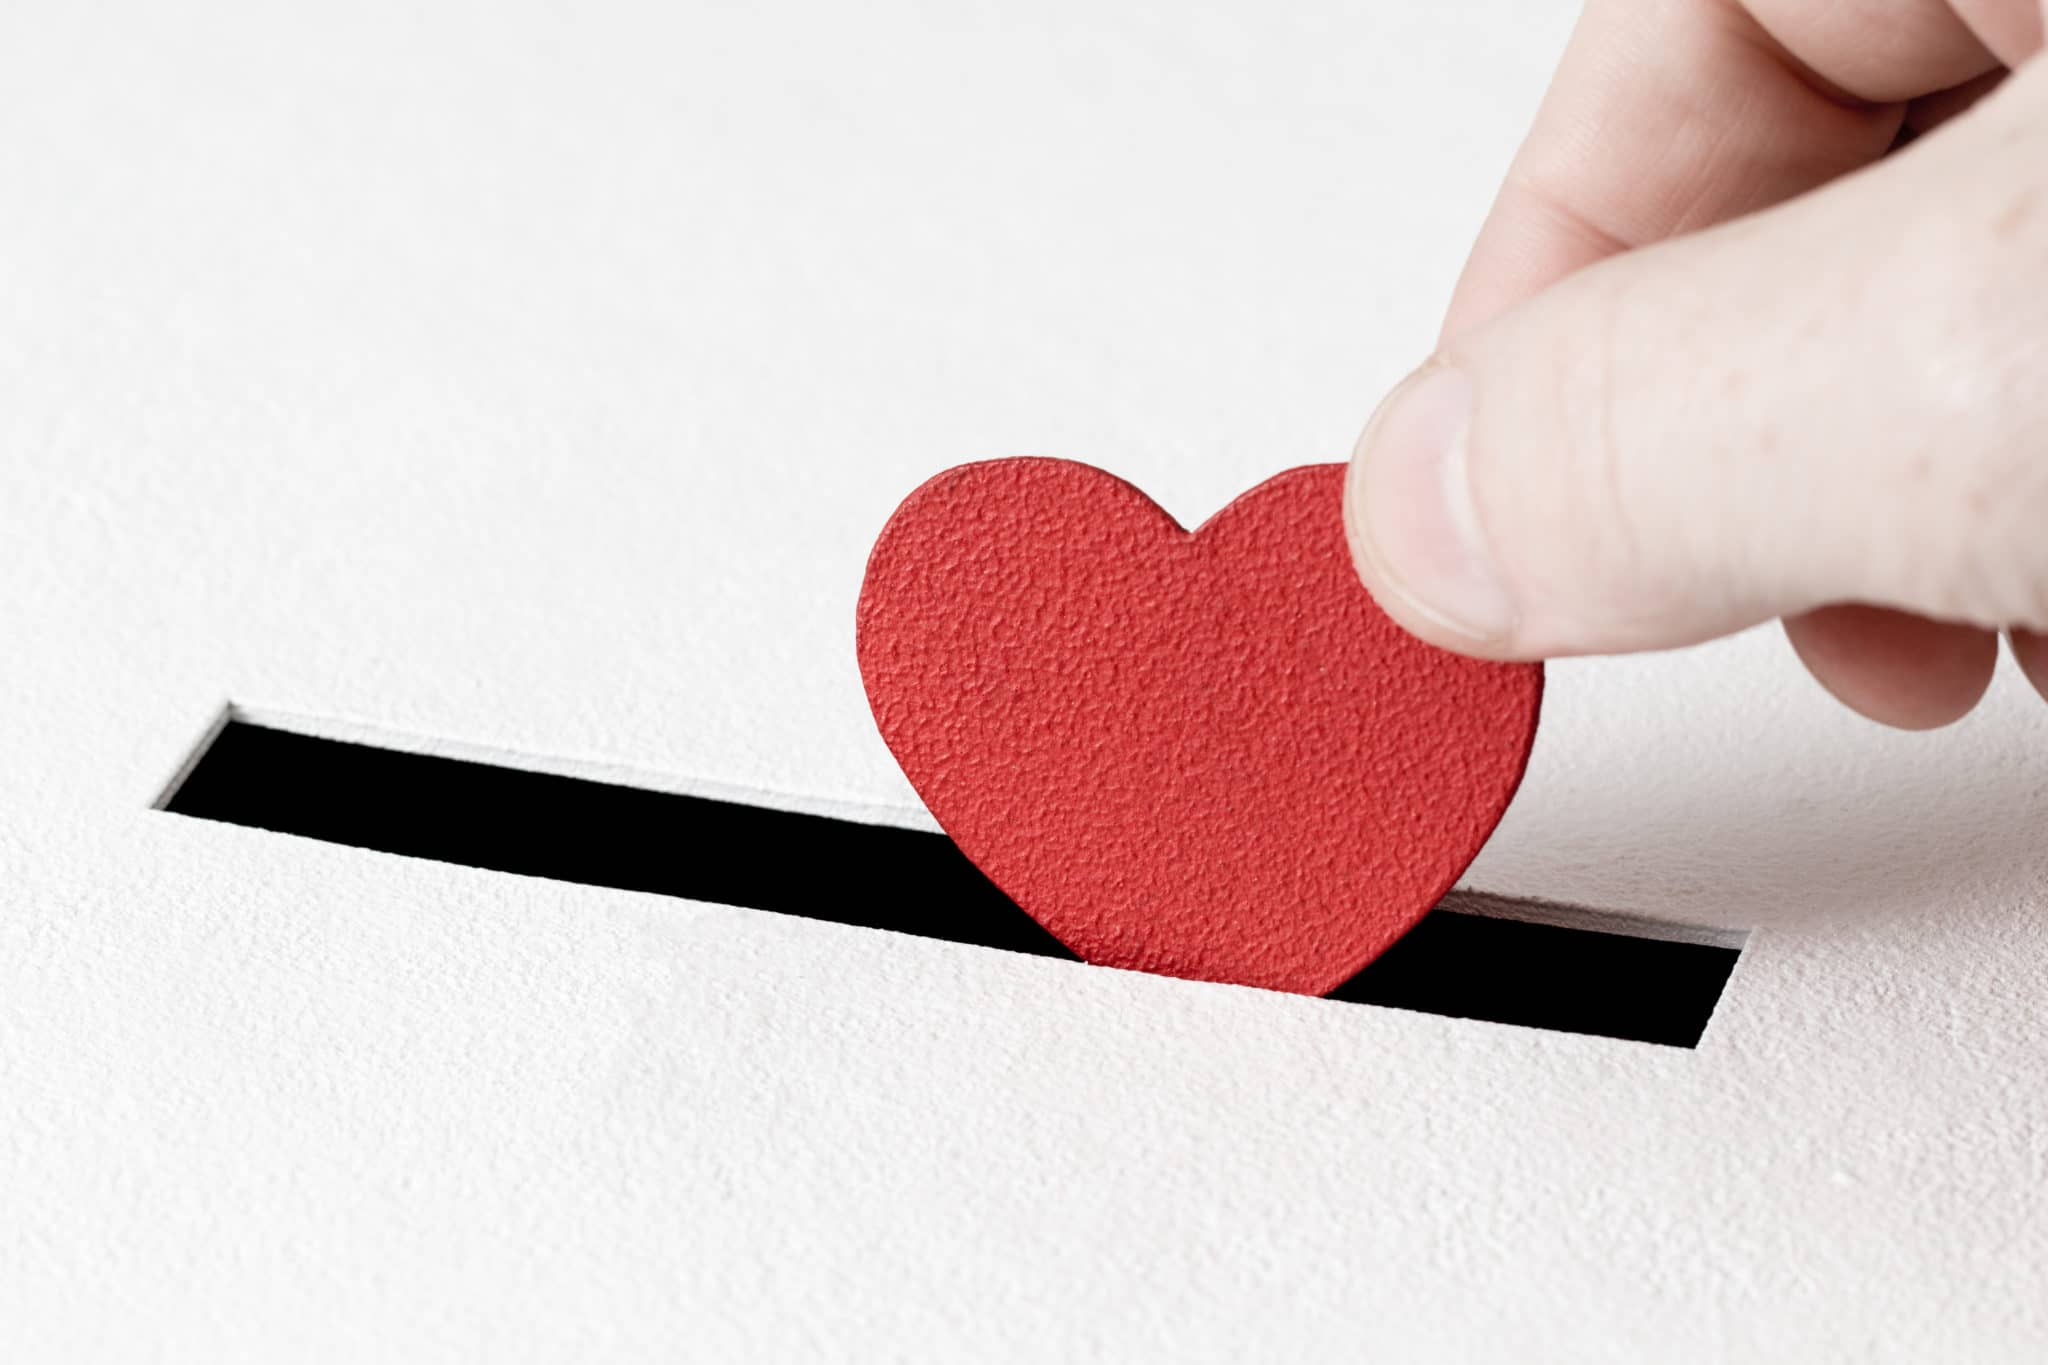 A small red heart being posted into a slot